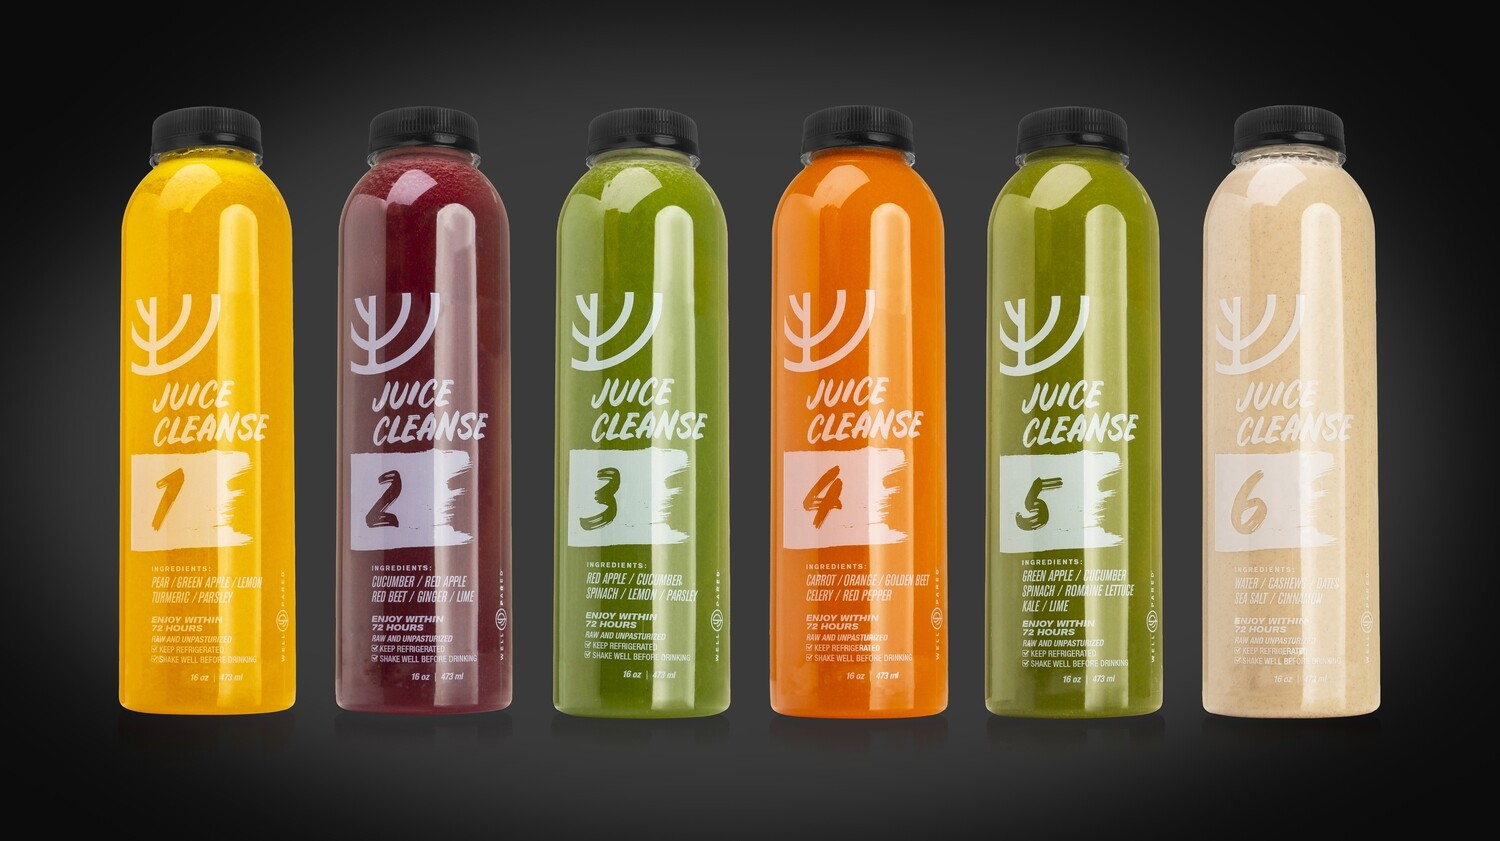 1 Day - Classic Cleanse